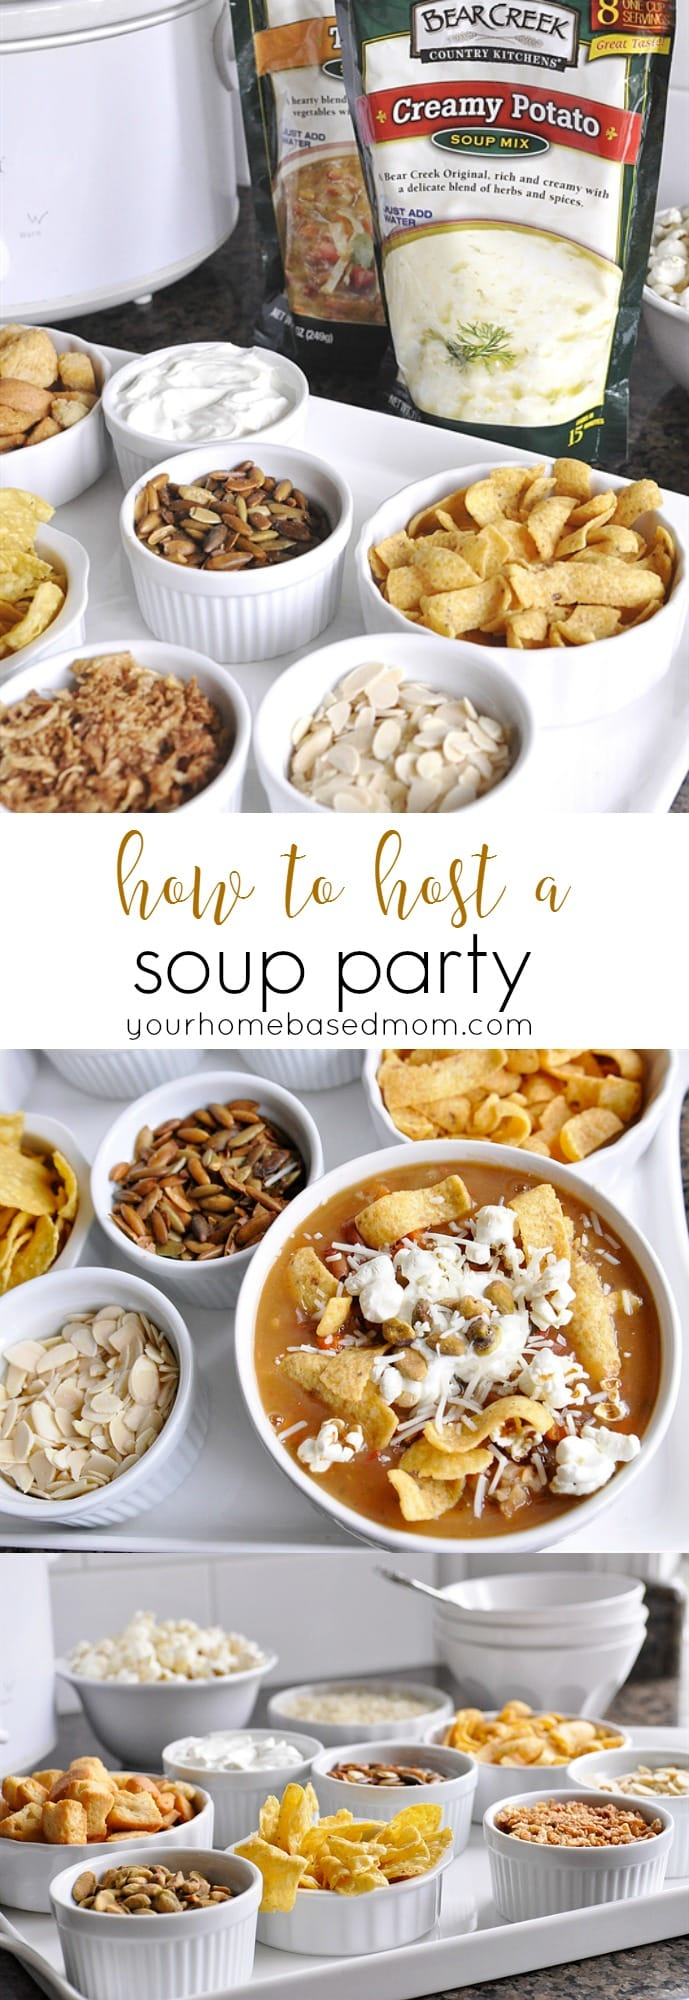 How to Host a Soup Party from @yourhomebasedmom.com